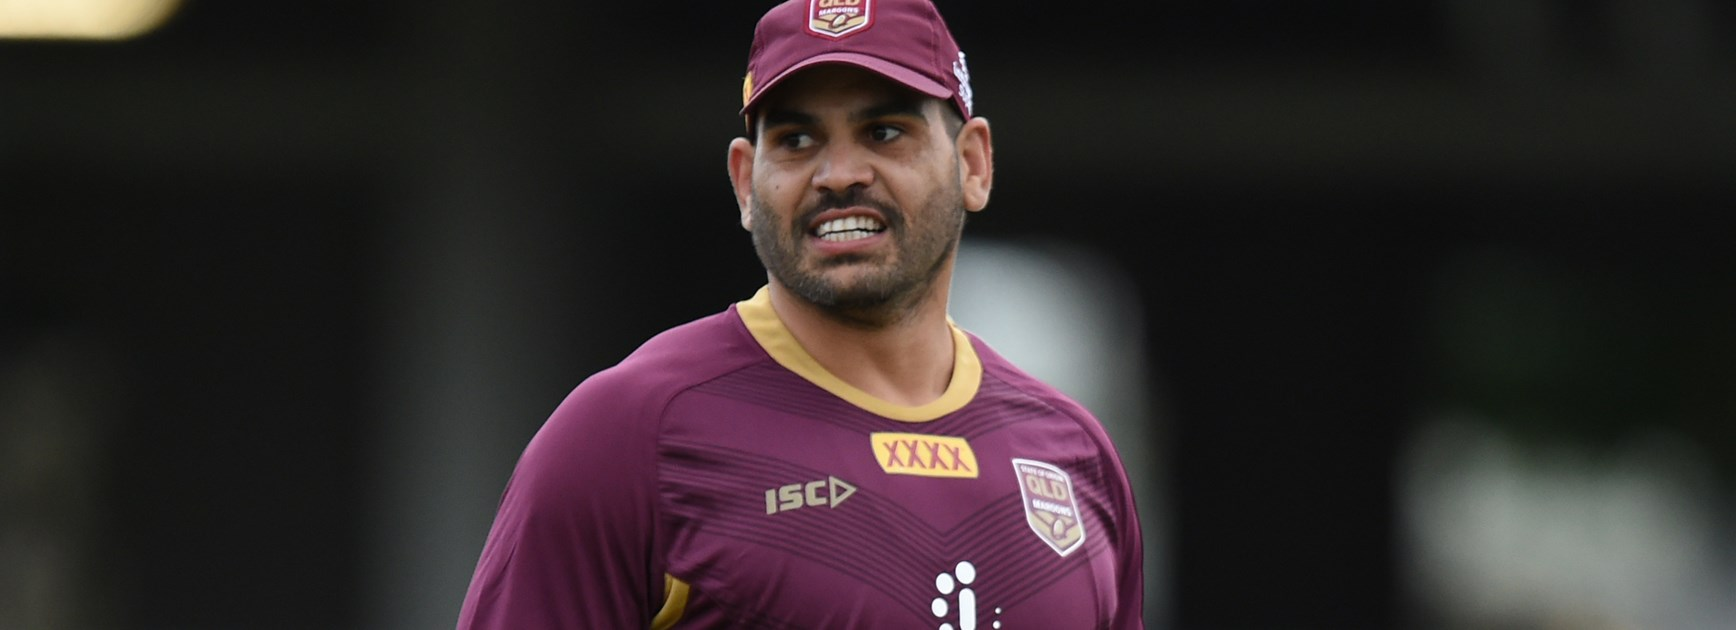 Inglis shed tears when given Maroons captaincy